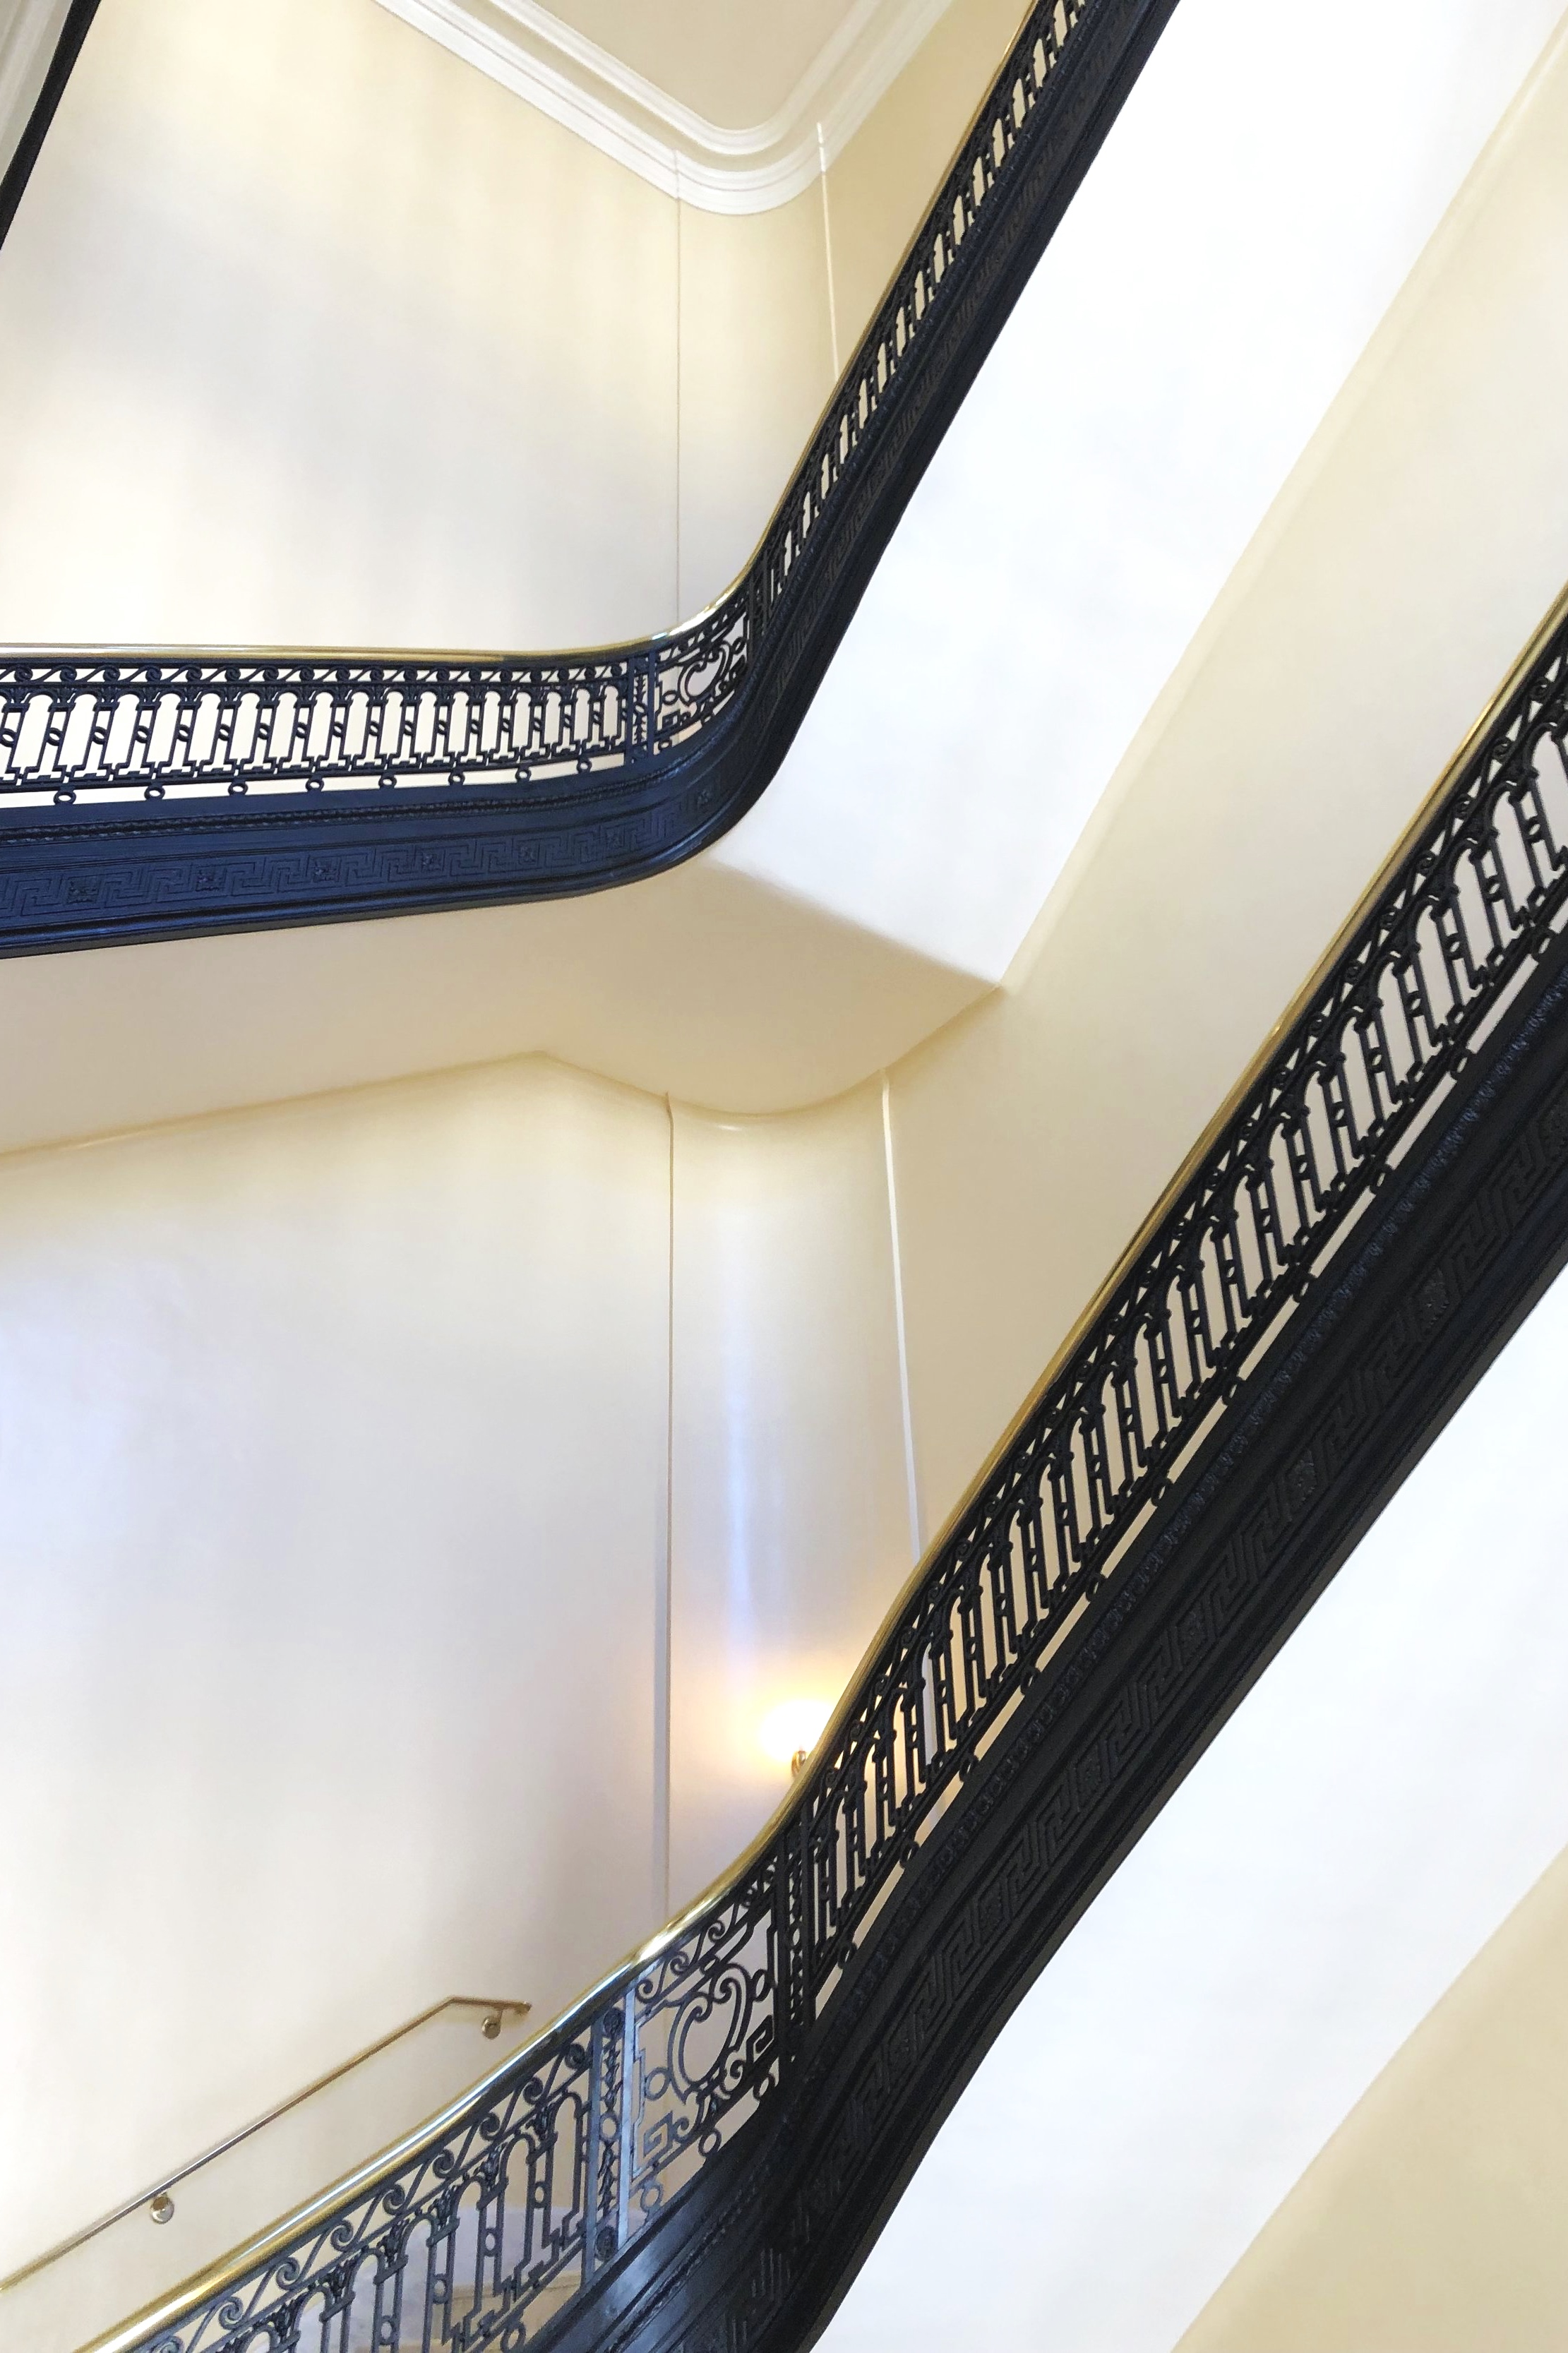 Staircase in Cannon House Office Building